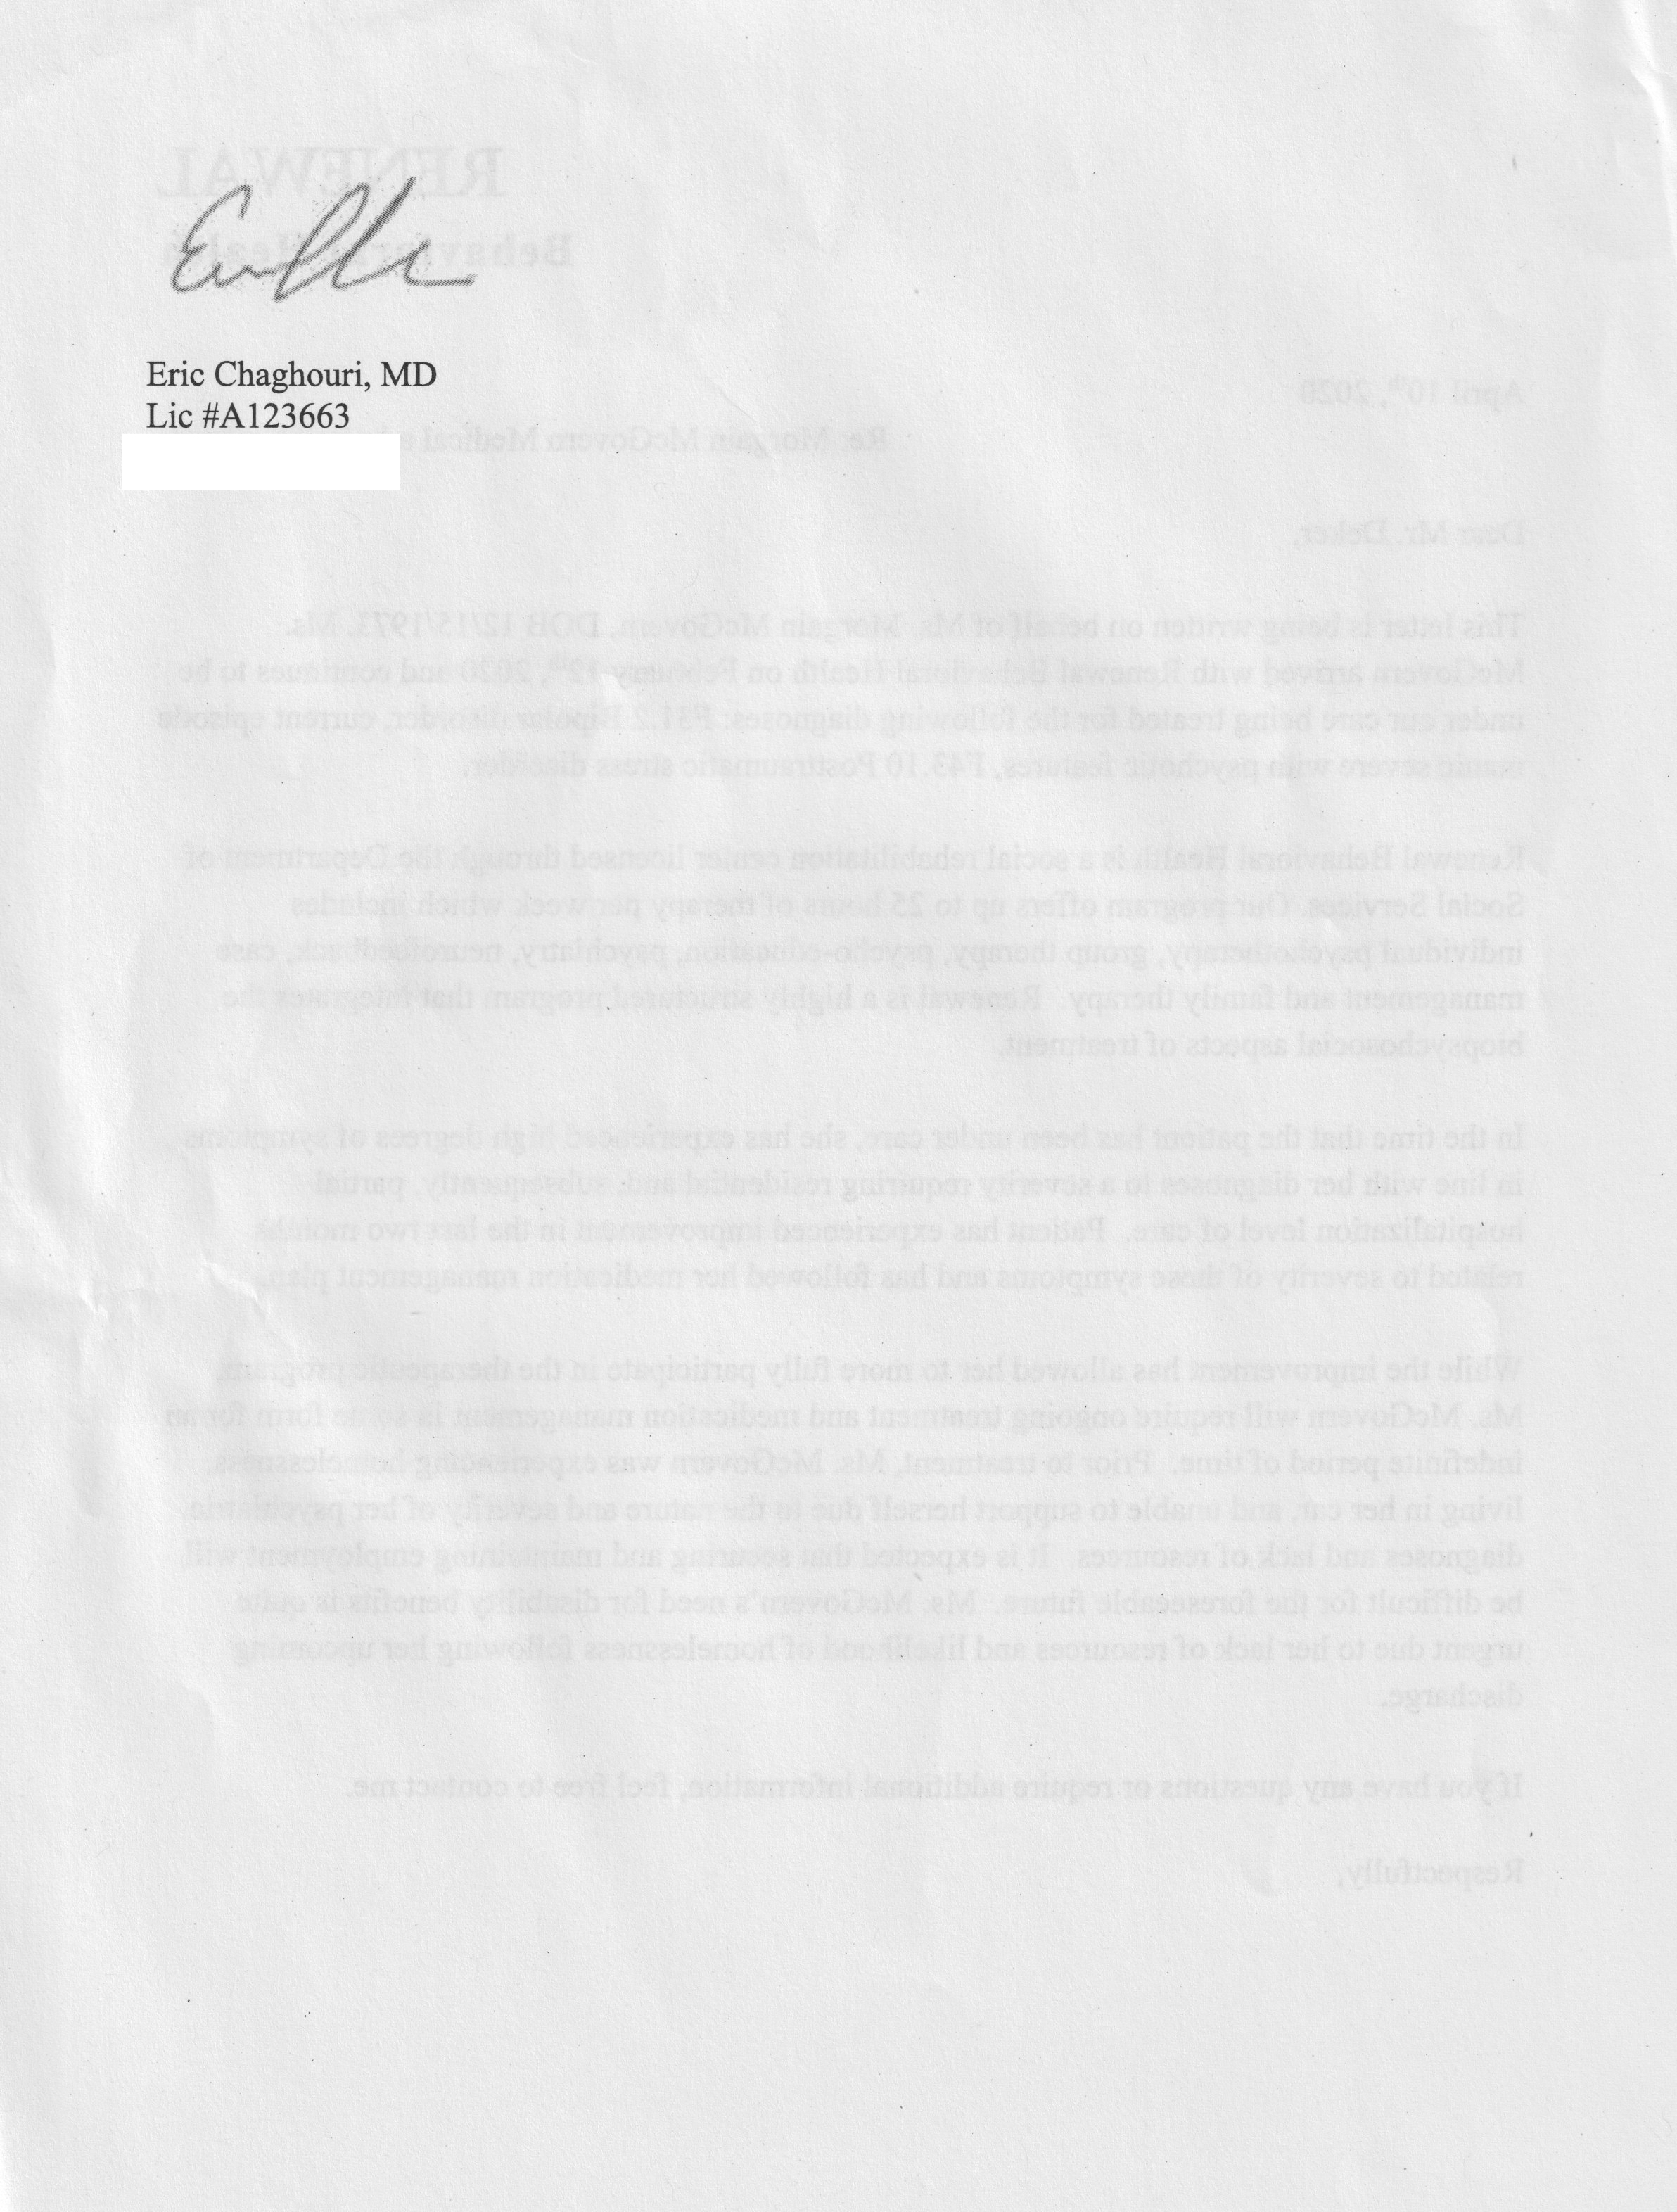 WEB Copy Chagouri page 2 Renewal mental health letter April 10 2020 Dr Chagouri page 2 Eric Chagouri signature copy